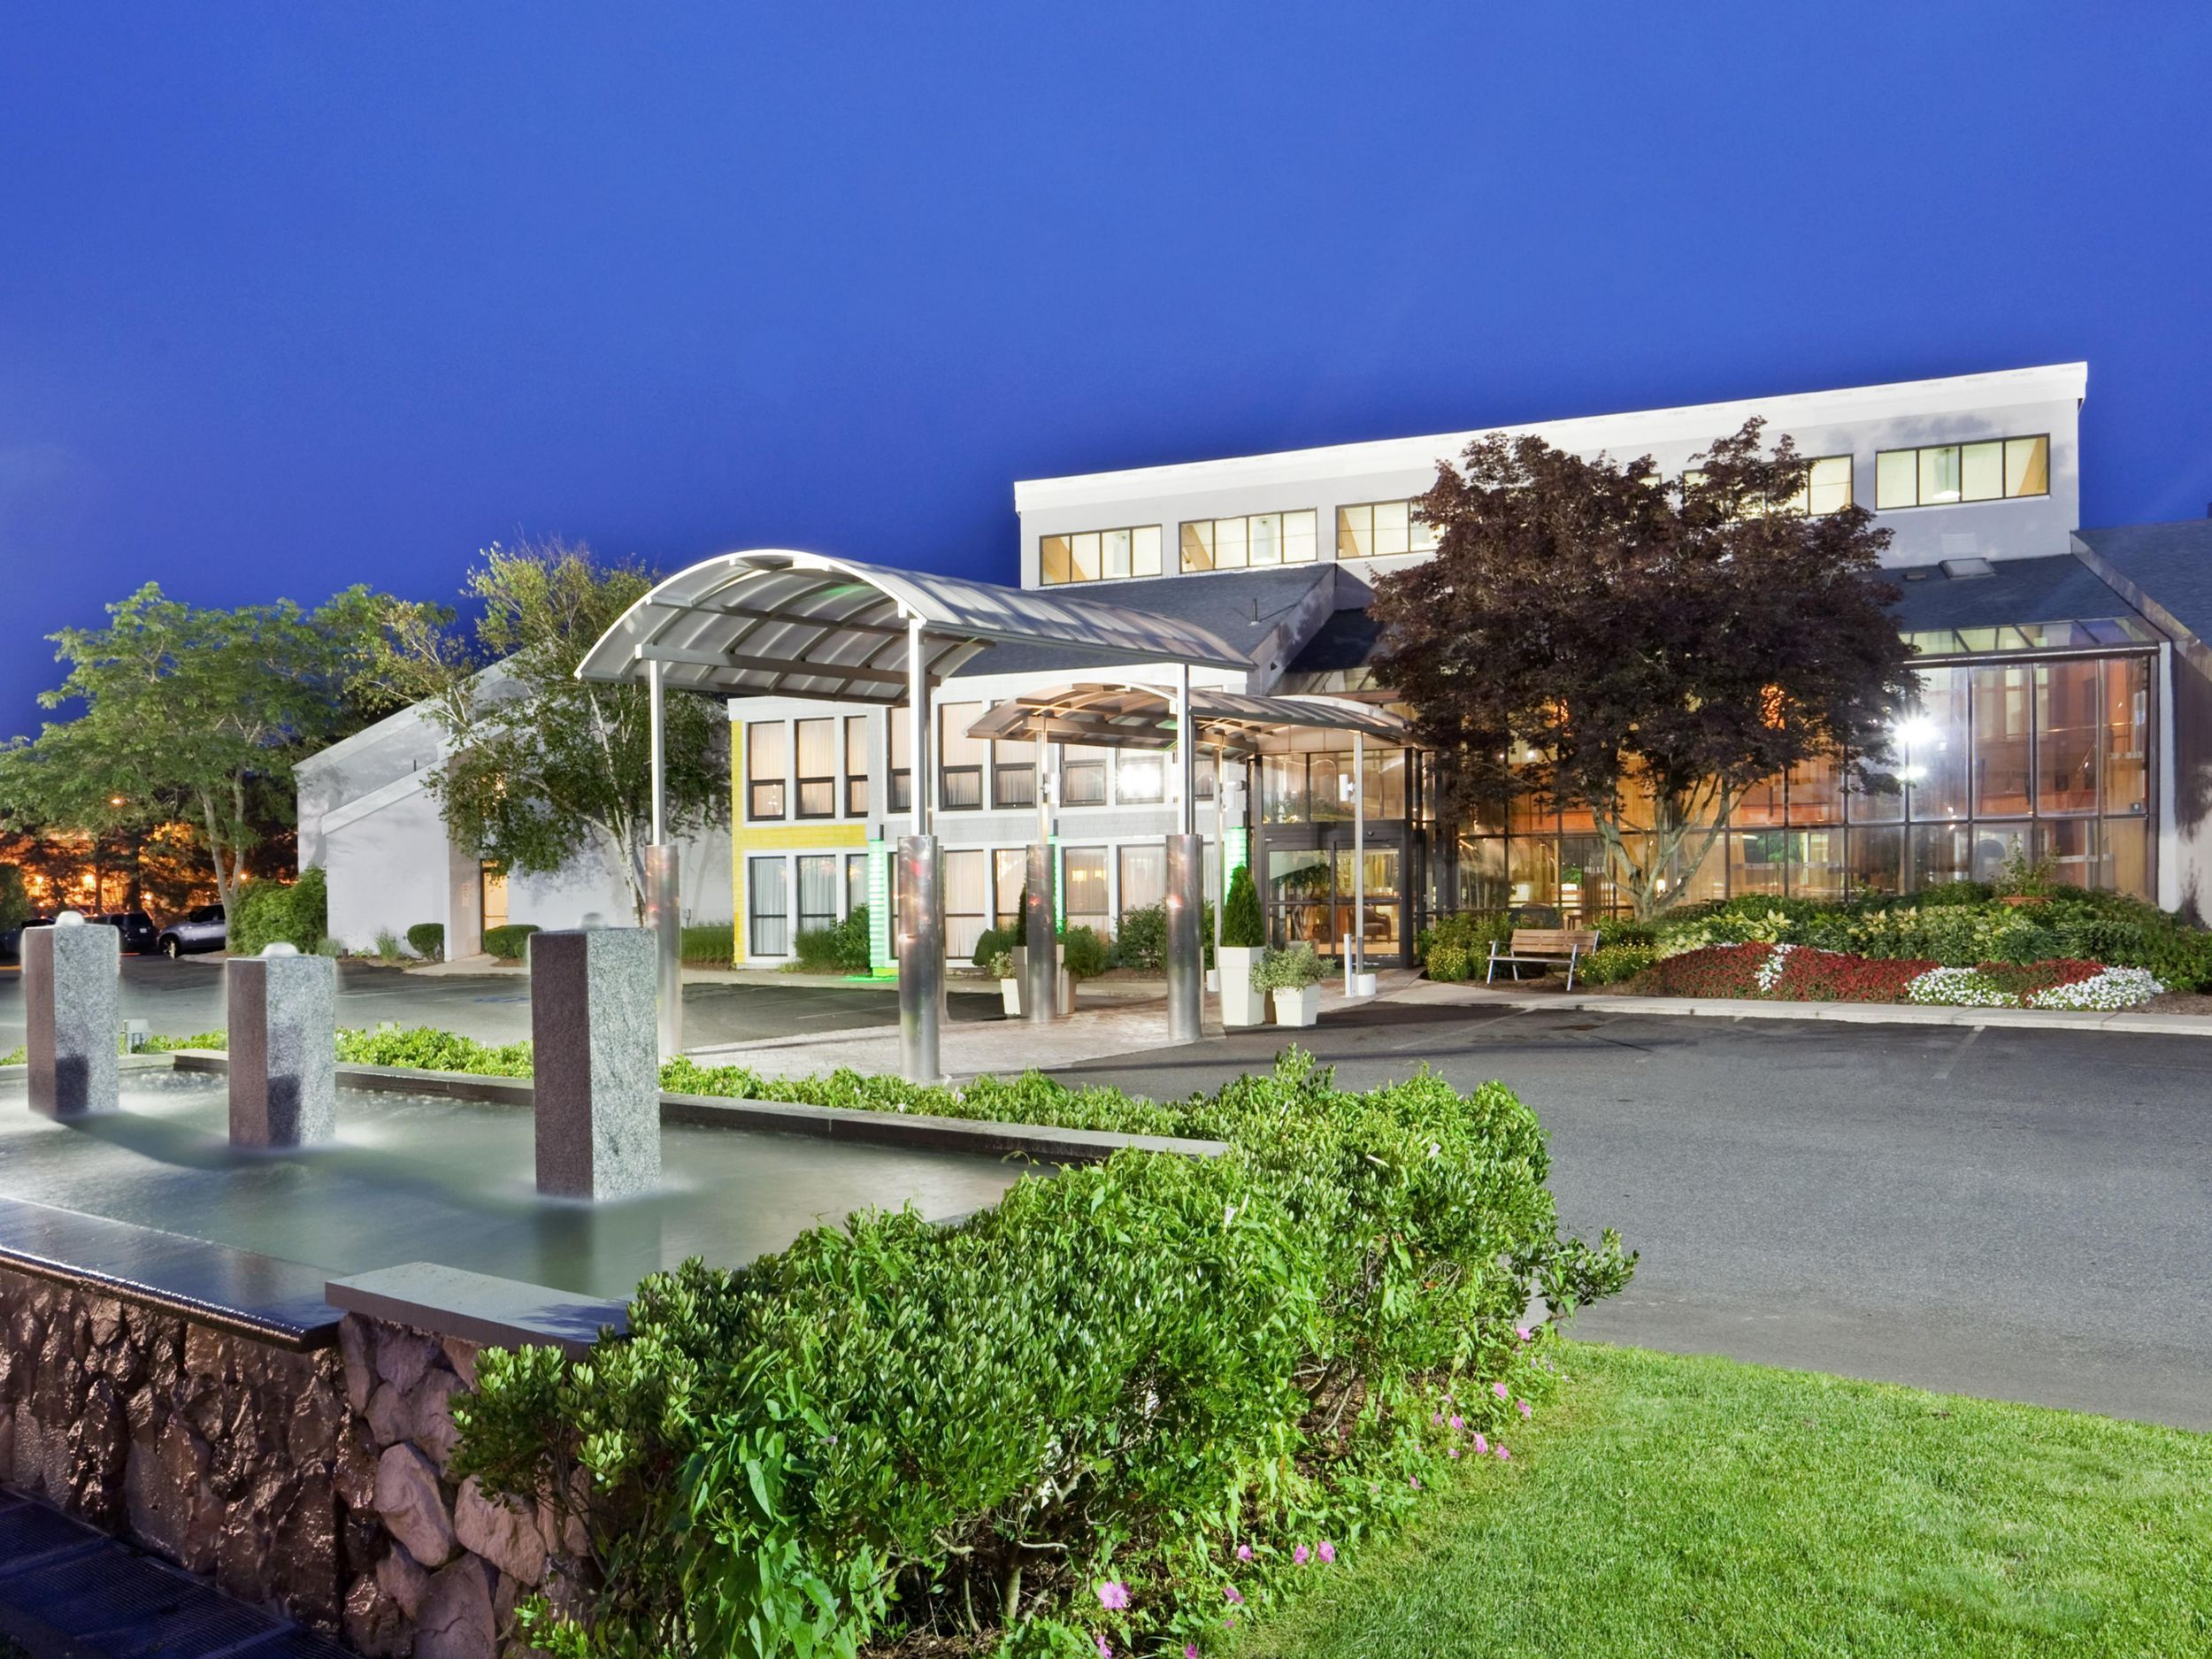 Holiday Inn Cape Cod Hyannis Ma Is Nestled In The Center Of Cape Cod Tripres Holiday Inn Cape Cod Hyannis